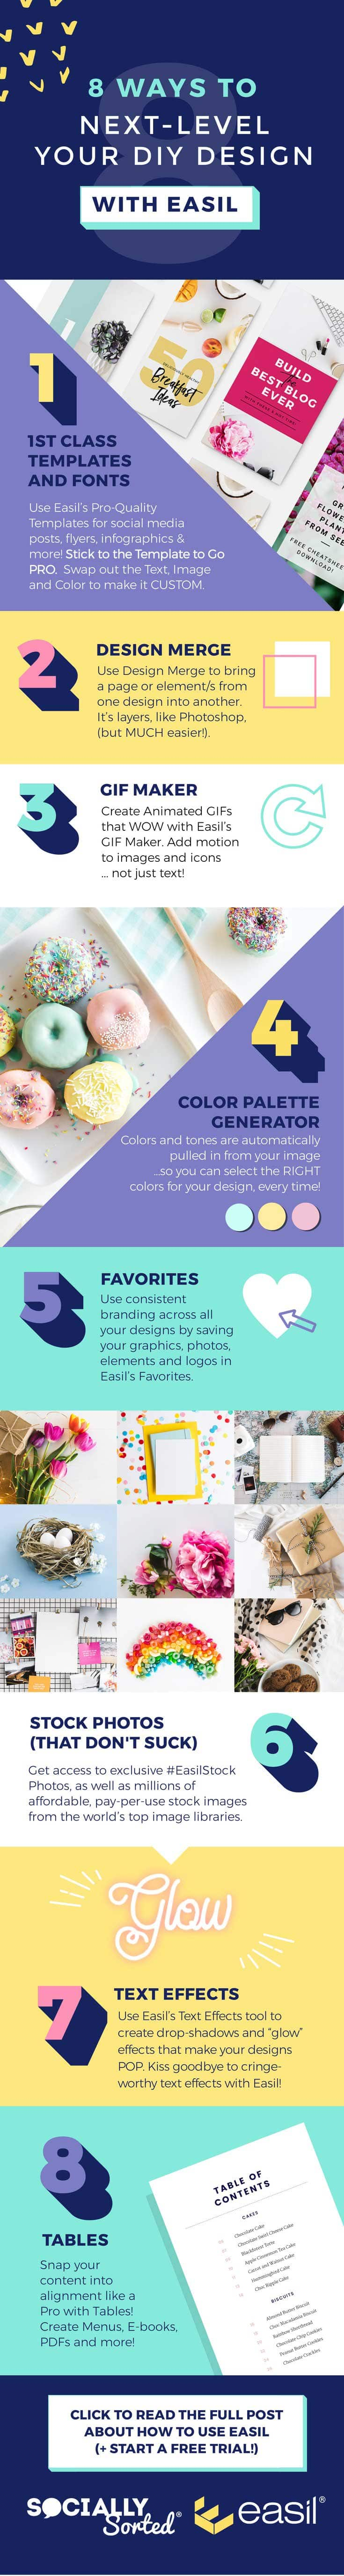 How to Use Easil to Next-Level Your DIY Design - This Infographic Shares 8 Ways You Can Use Easil For DIY Design (that's So Good It Looks Like A Pro Designed It)